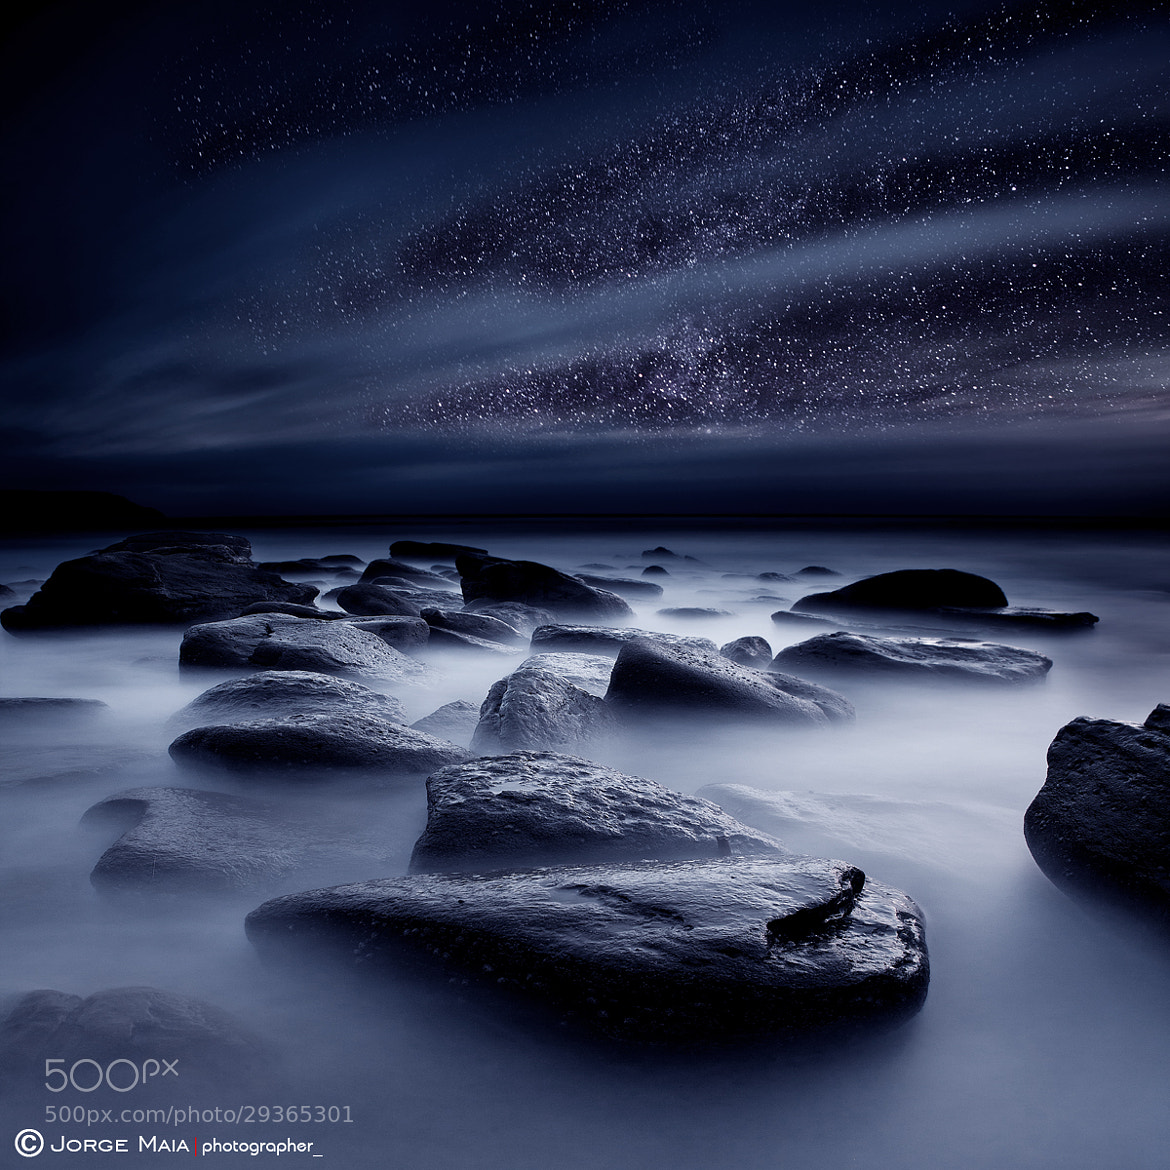 Photograph The sound of Silence by Jorge Maia on 500px